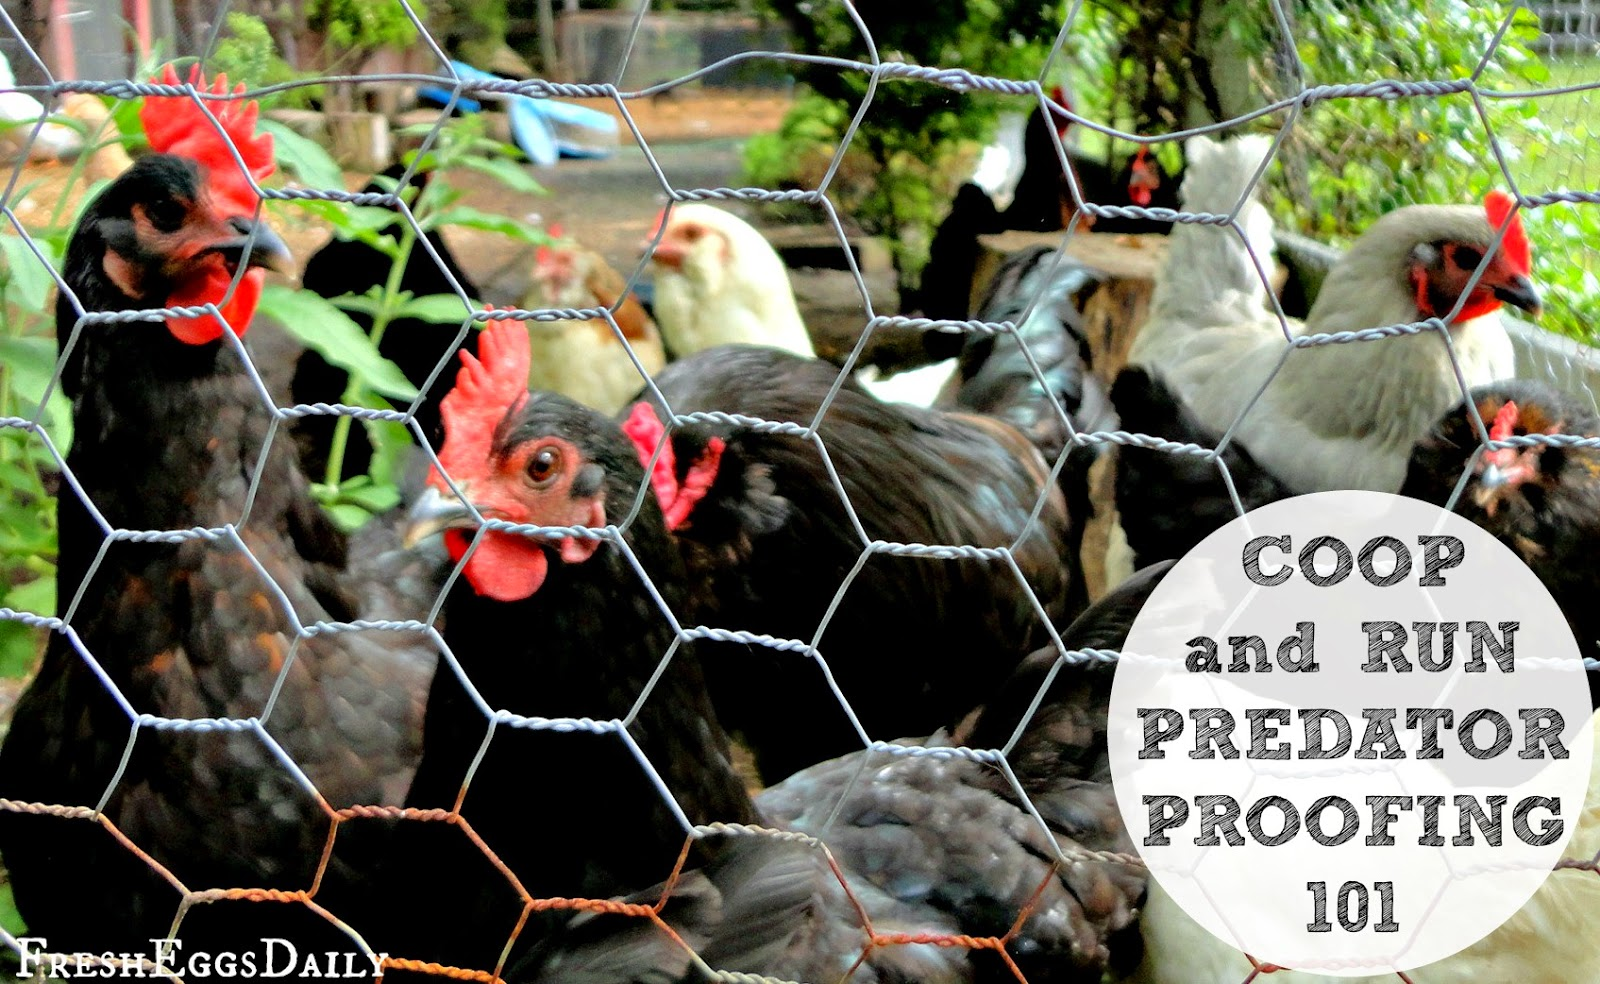 chicken coop predator proofing 101 how to keep your chickens safe